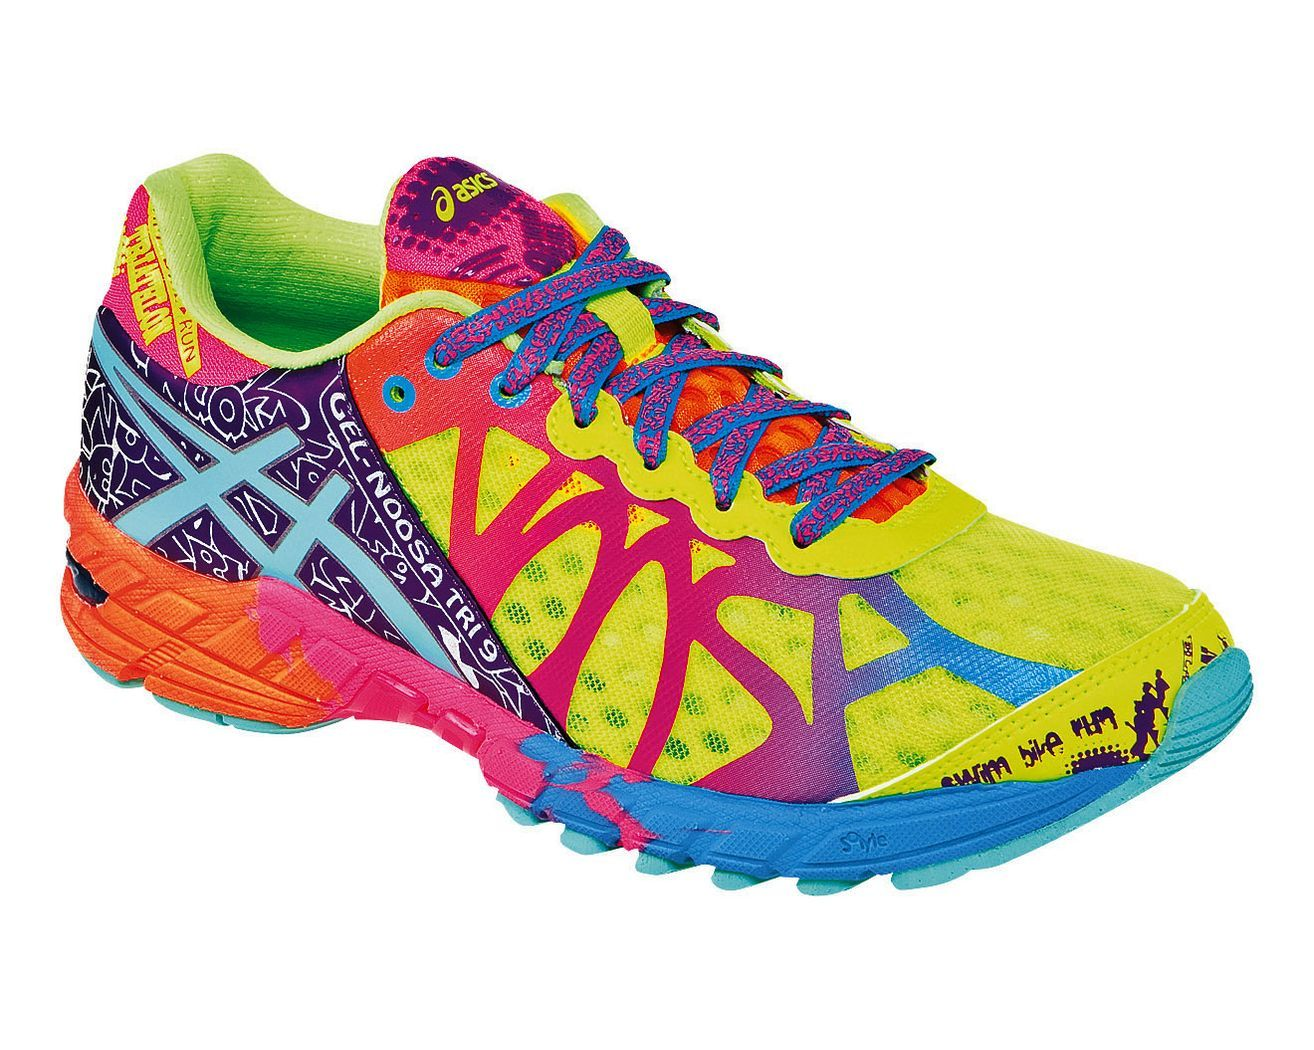 ec73c6be18 Womens ASICS GEL-Noosa Tri 9 Running Shoe at Road Runner Sports -  pre-ordered!